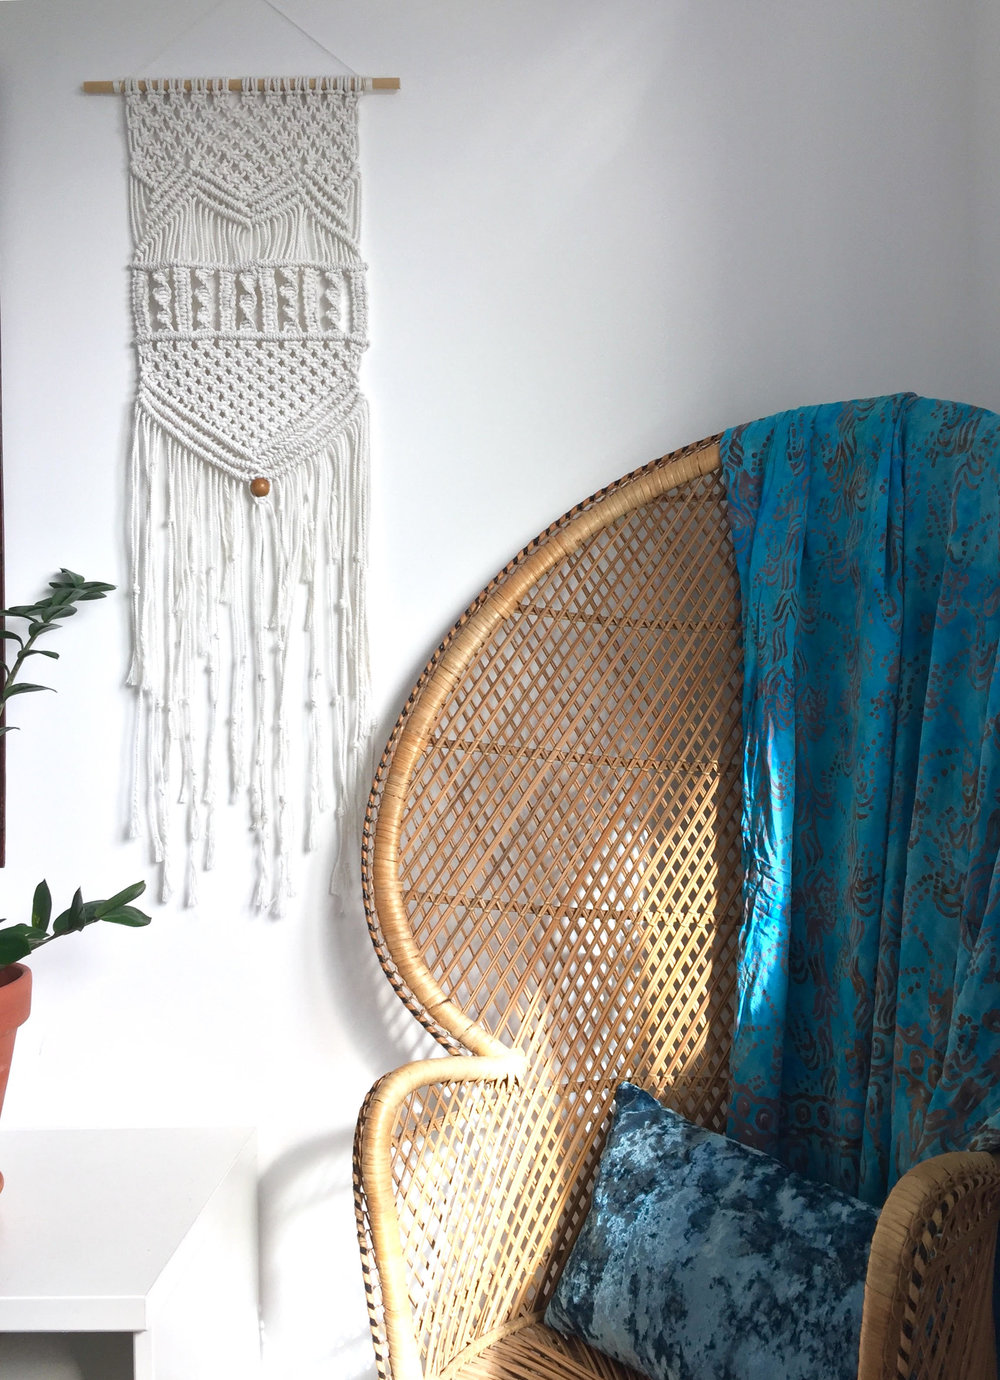 Paper_and_Moon_Louise_Dockery_interior_design_Dublin_Ireland_wall_hanging_macrame_weaving_Weaverella_Emma_Carroll_bohemian_hippy.jpg